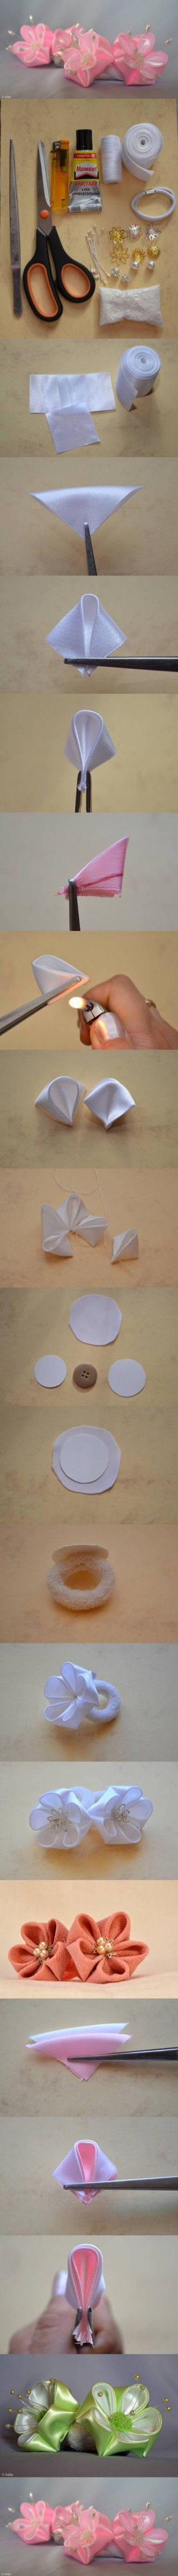 DIY Round Petals Ribbon Flower DIY Projects